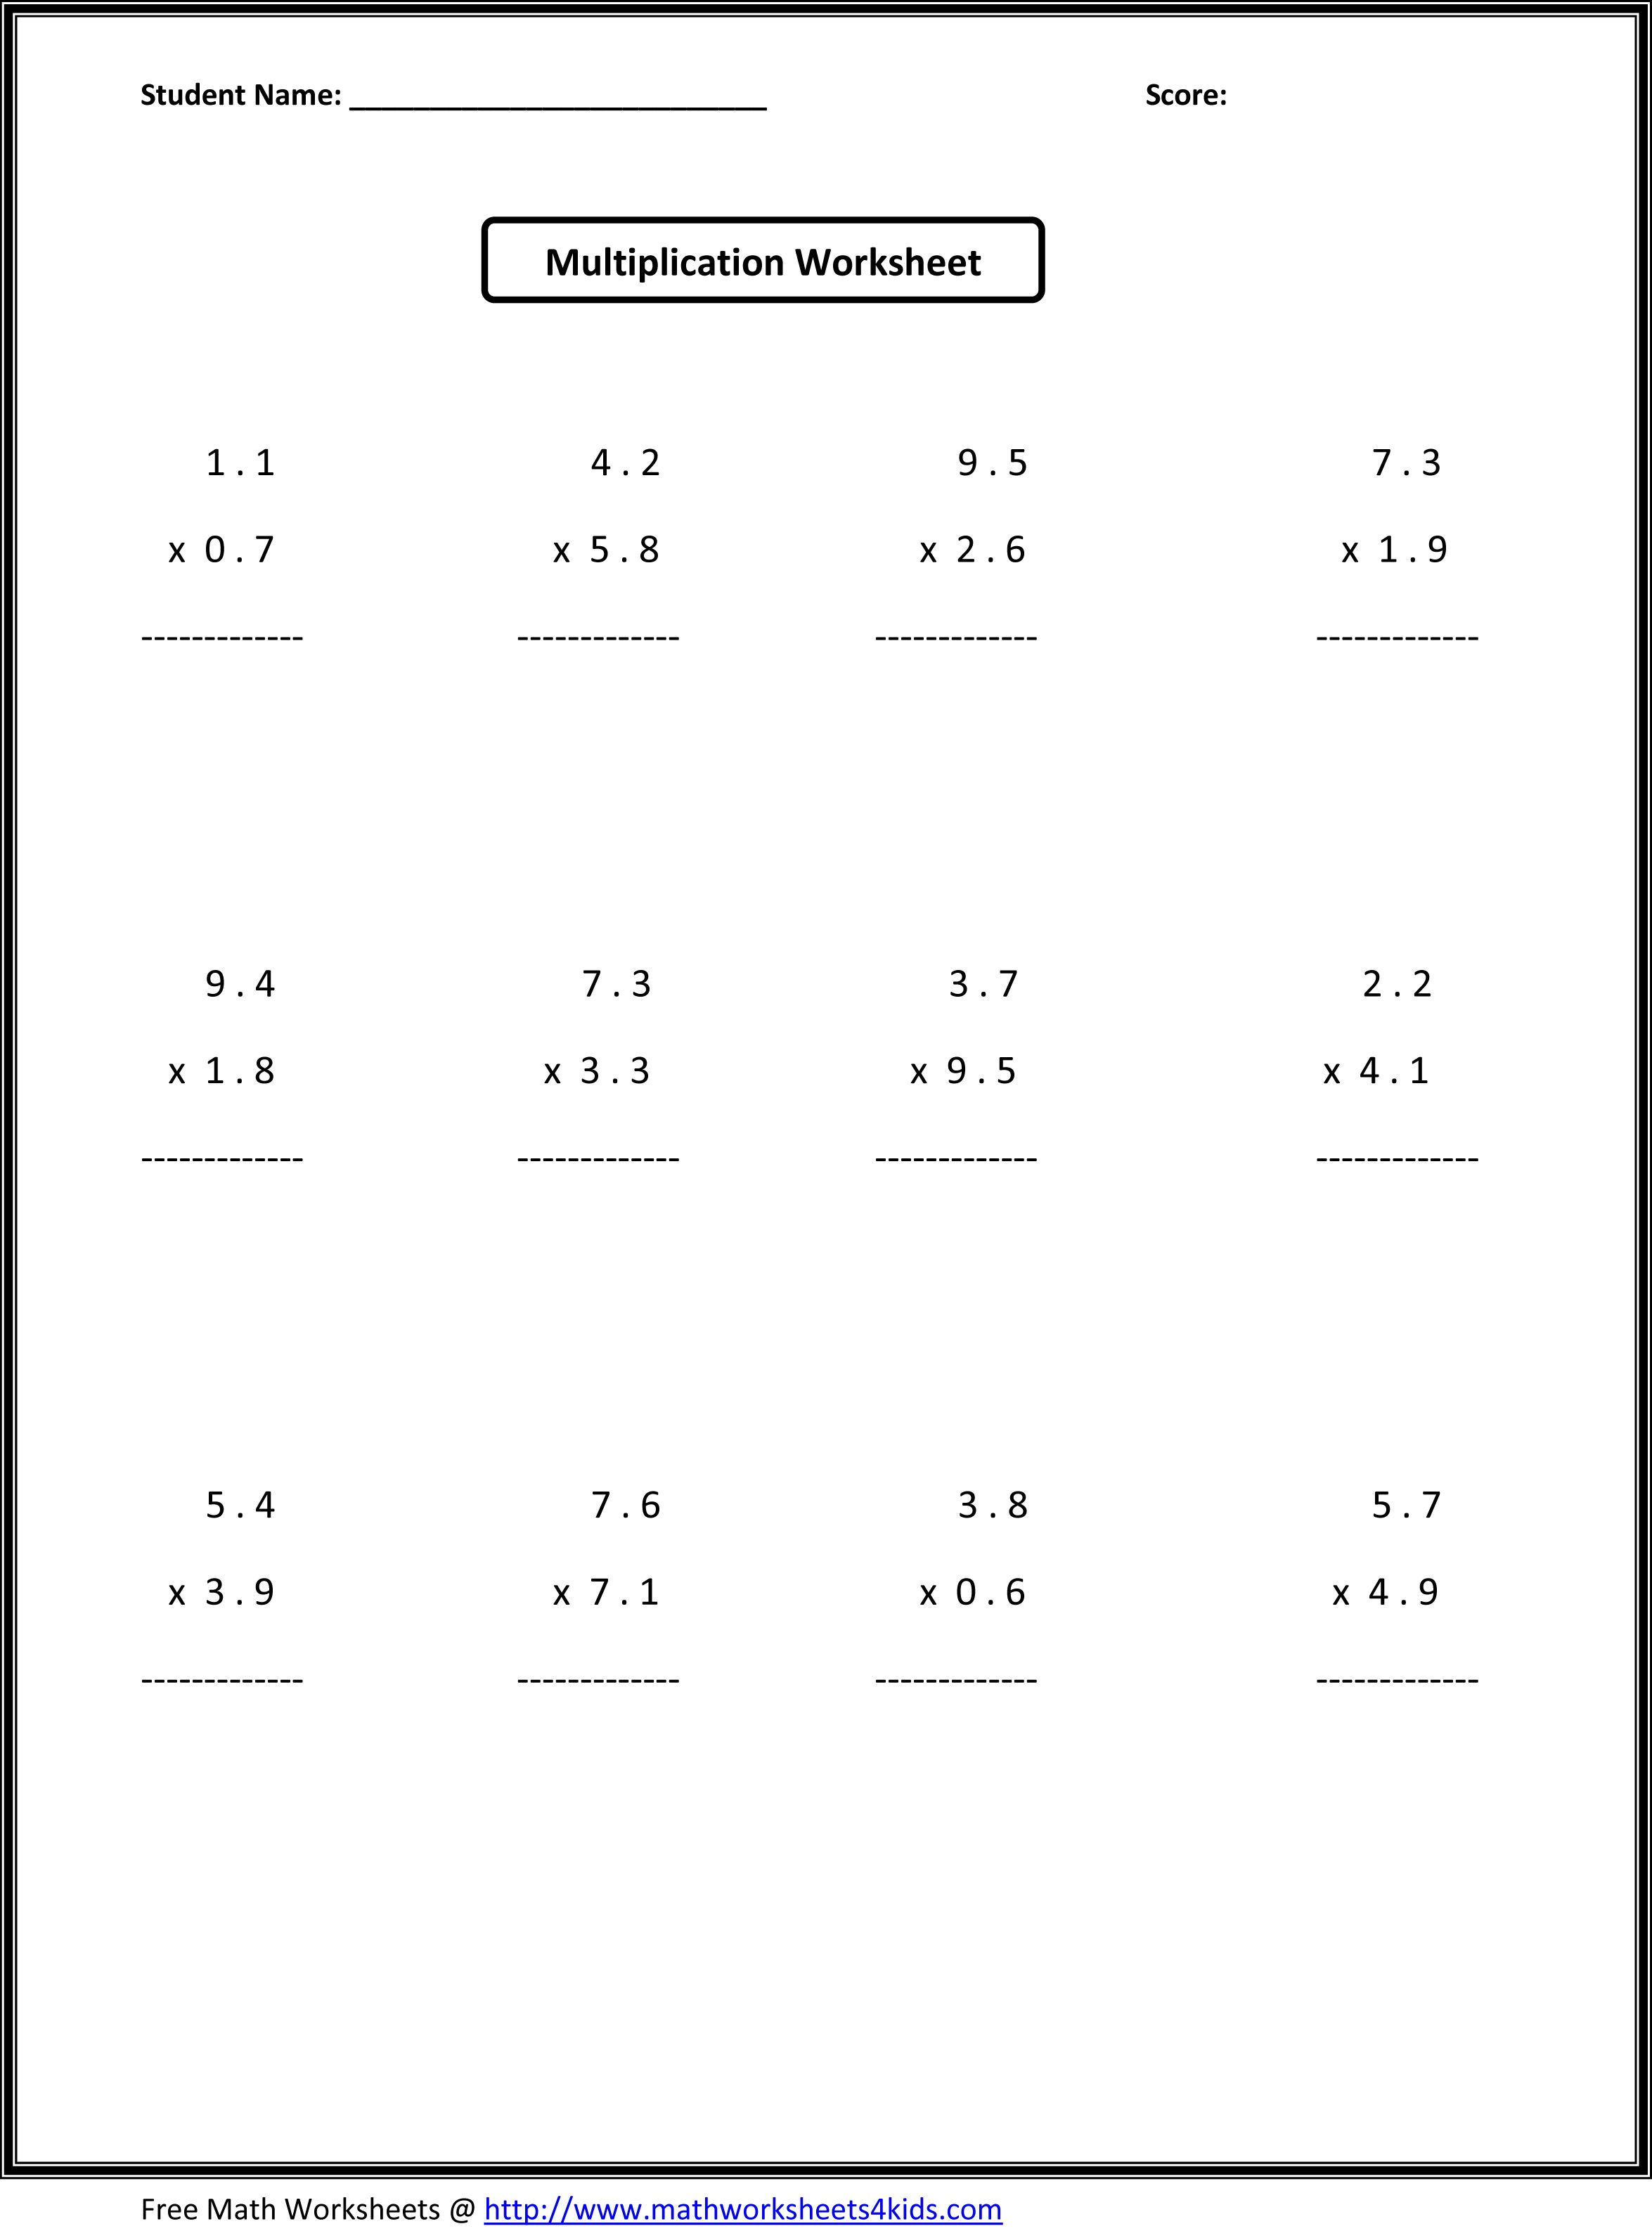 Worksheets Worksheets For 6th Grade Math math decimals worksheets riddles 4th 5th 6th 7th grade sixth have ratio multiplying and dividing fractions algebraic expressions equations inequalities geom